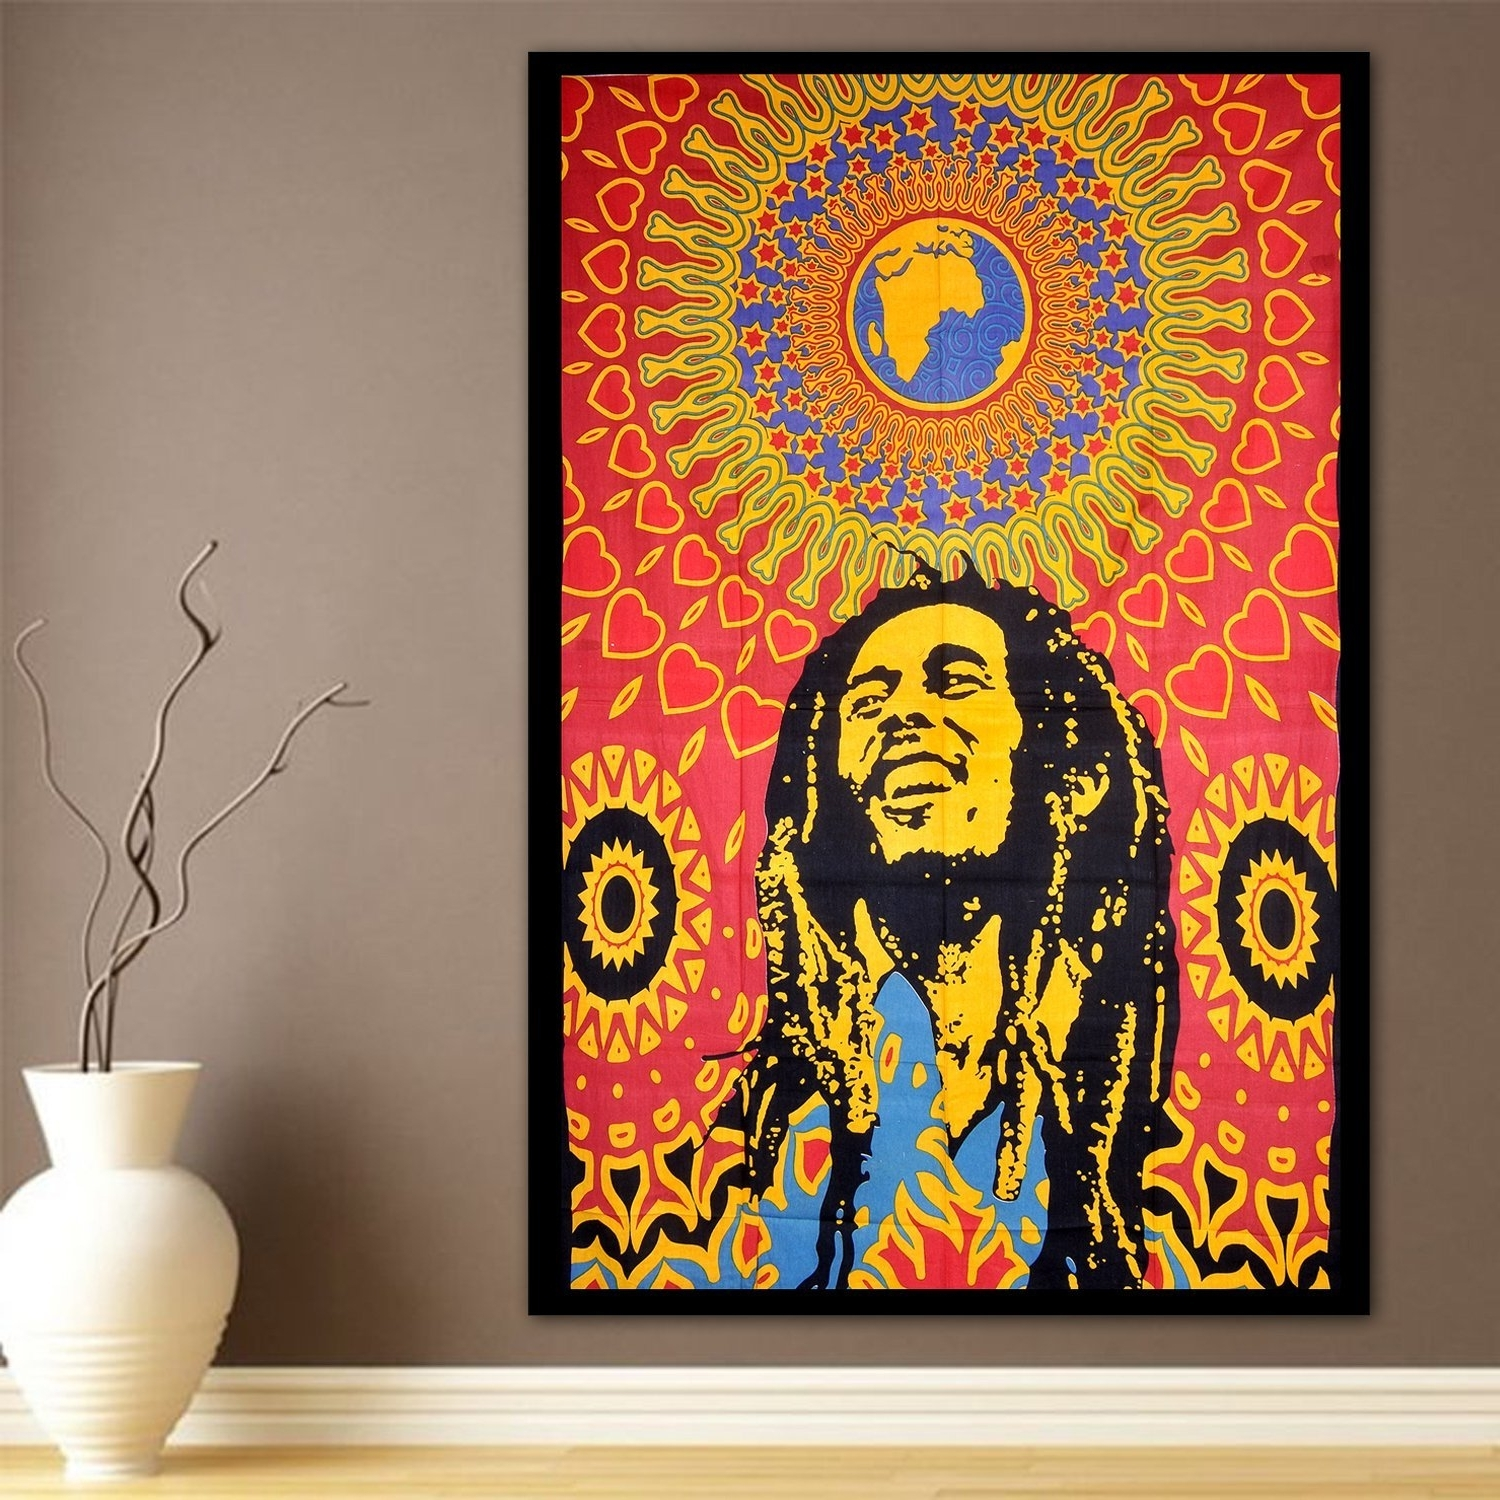 Bob Marley Wall Art Throughout Favorite Amazon: Modtradindia Bob Marley Tapestry, Indian Hippie Wall (View 7 of 15)